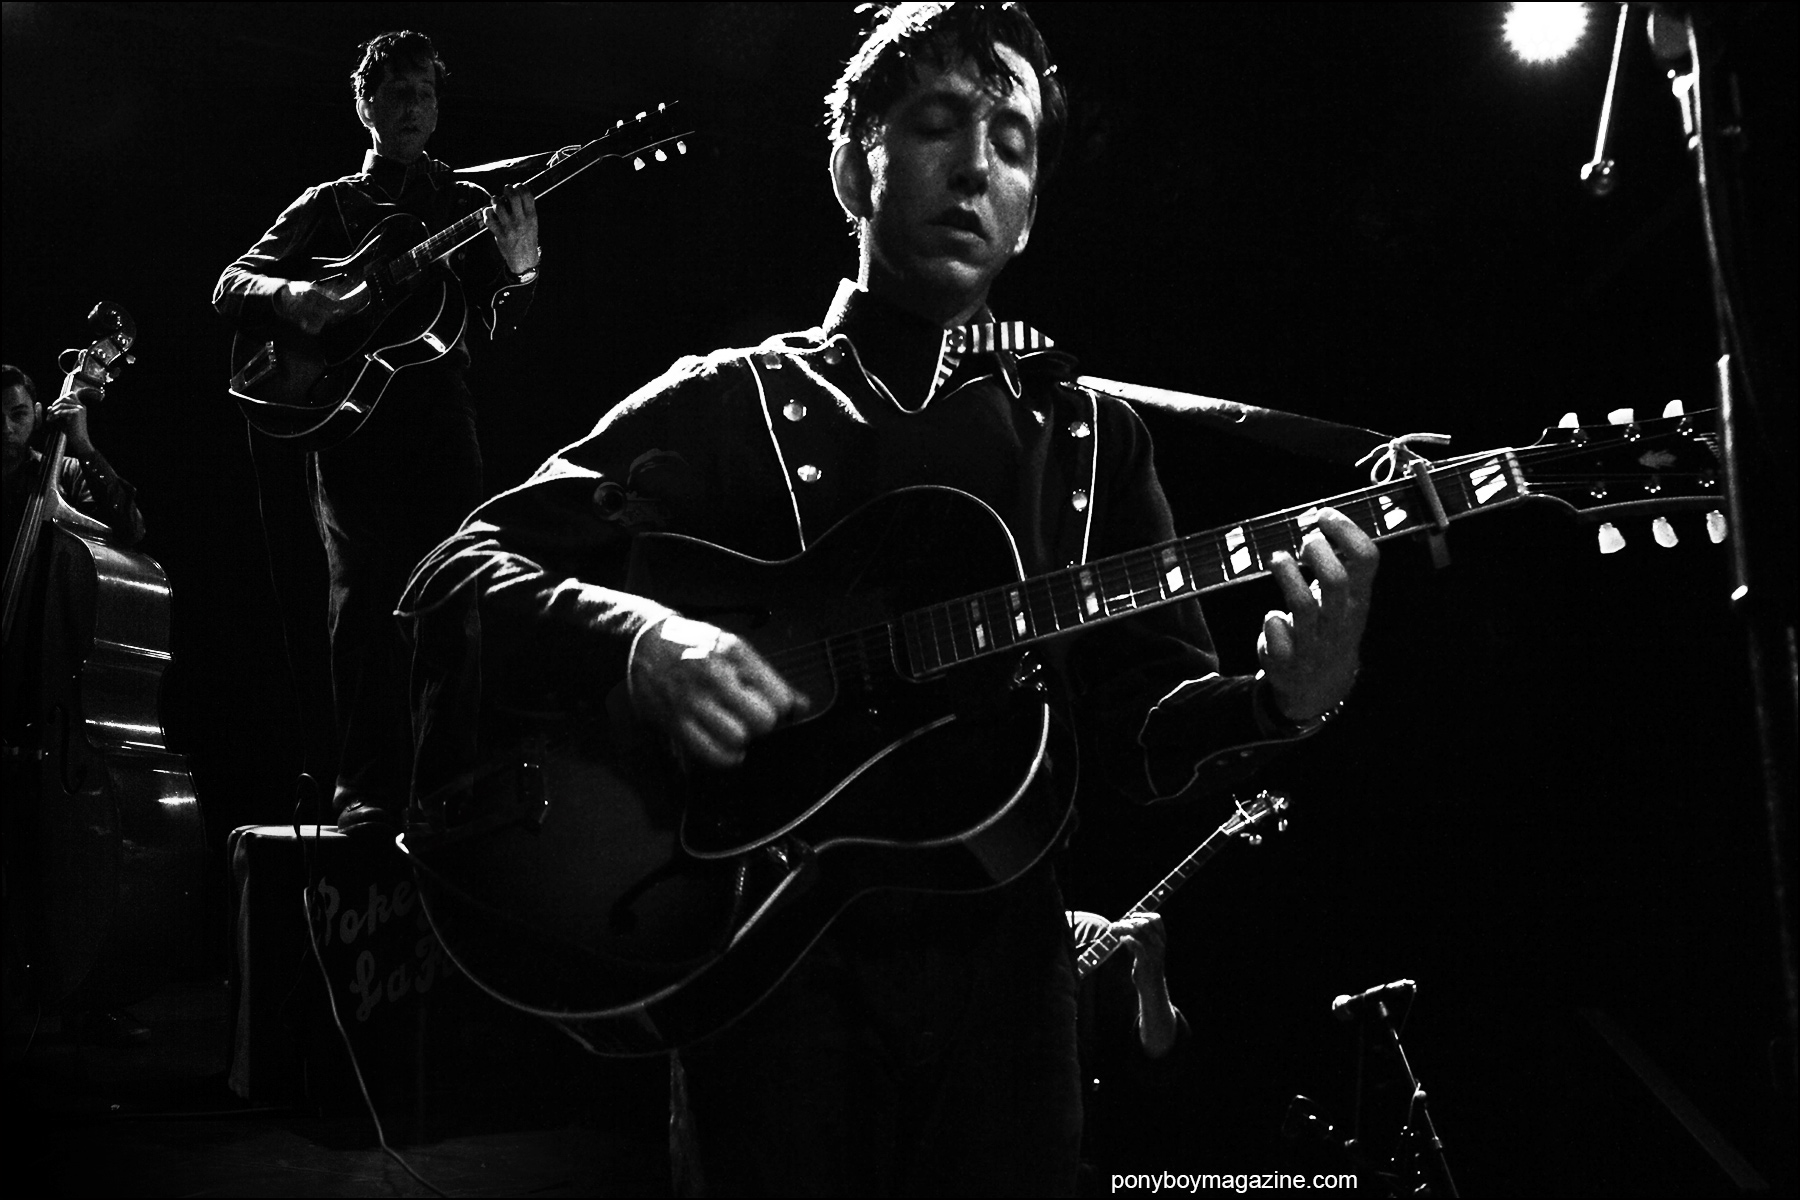 Pokey LaFarge photographed by Alexander Thompson, onstage at Bowery Ballroom in New York City. Ponyboy magazine NY.